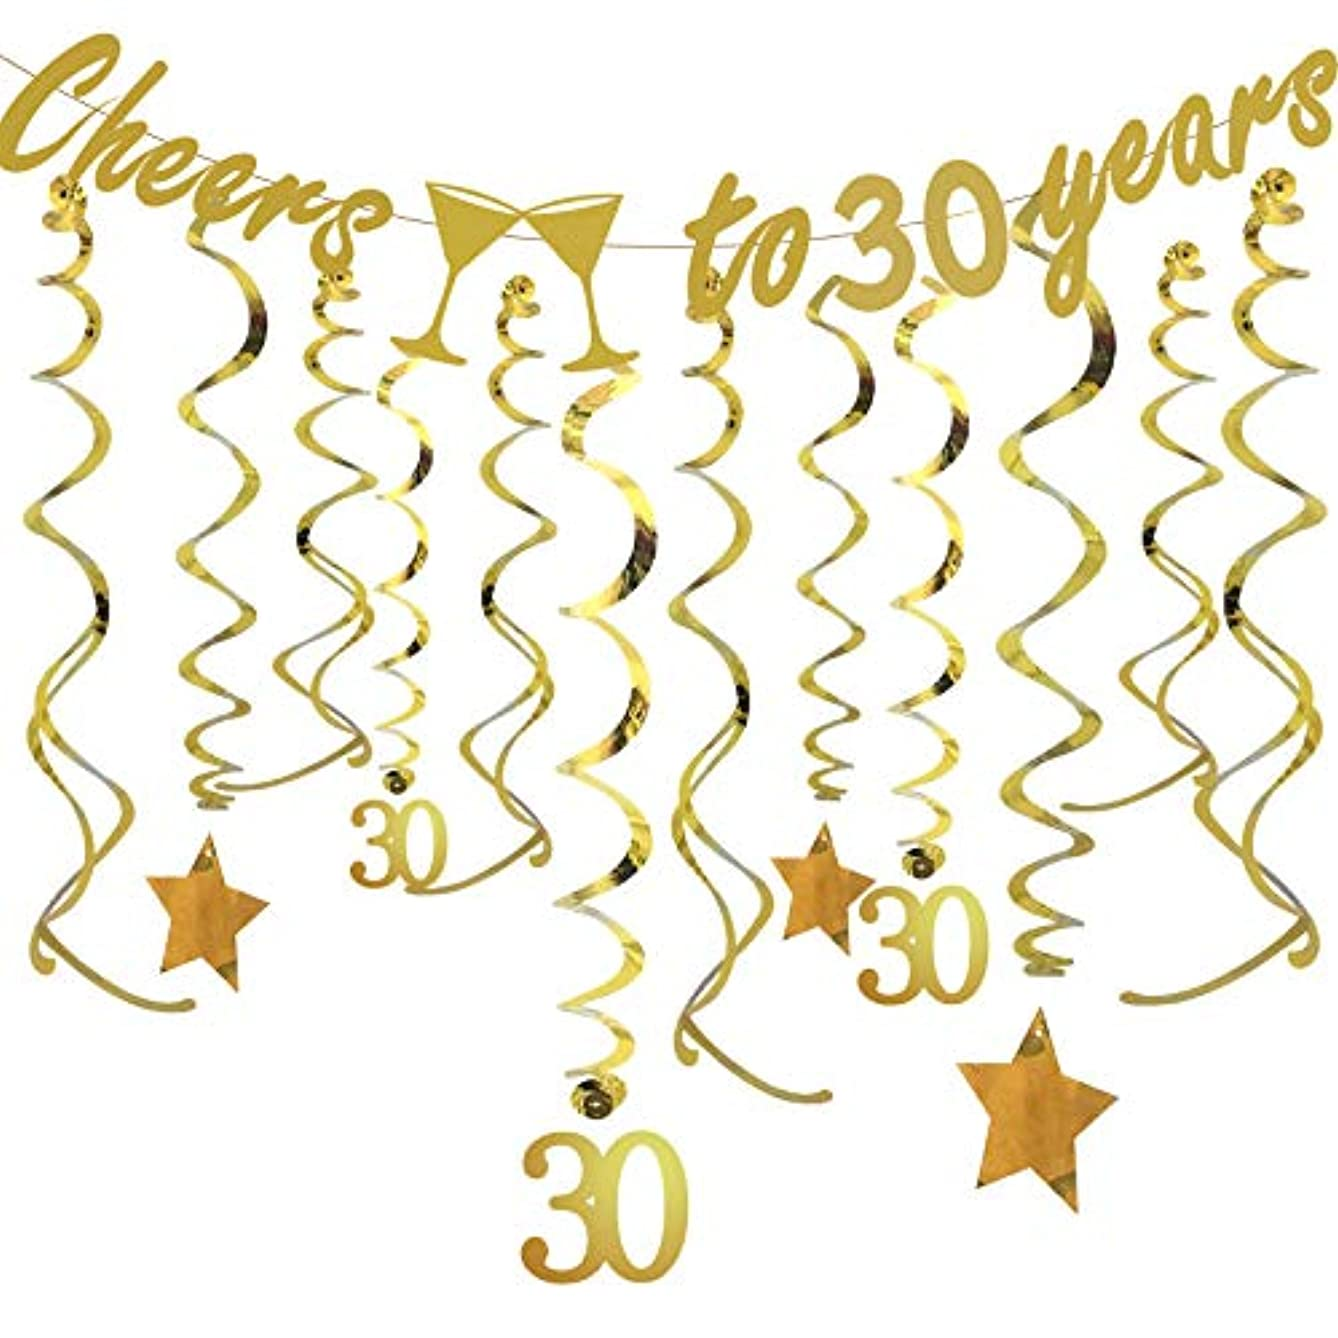 Gold 30th Birthday Party Decorations KIT - Cheers to 30 Years Banner, Sparkling Celebration 30 Hanging Swirls, Perfect 30 Years Old Party Supplies 30th Anniversary Decorations